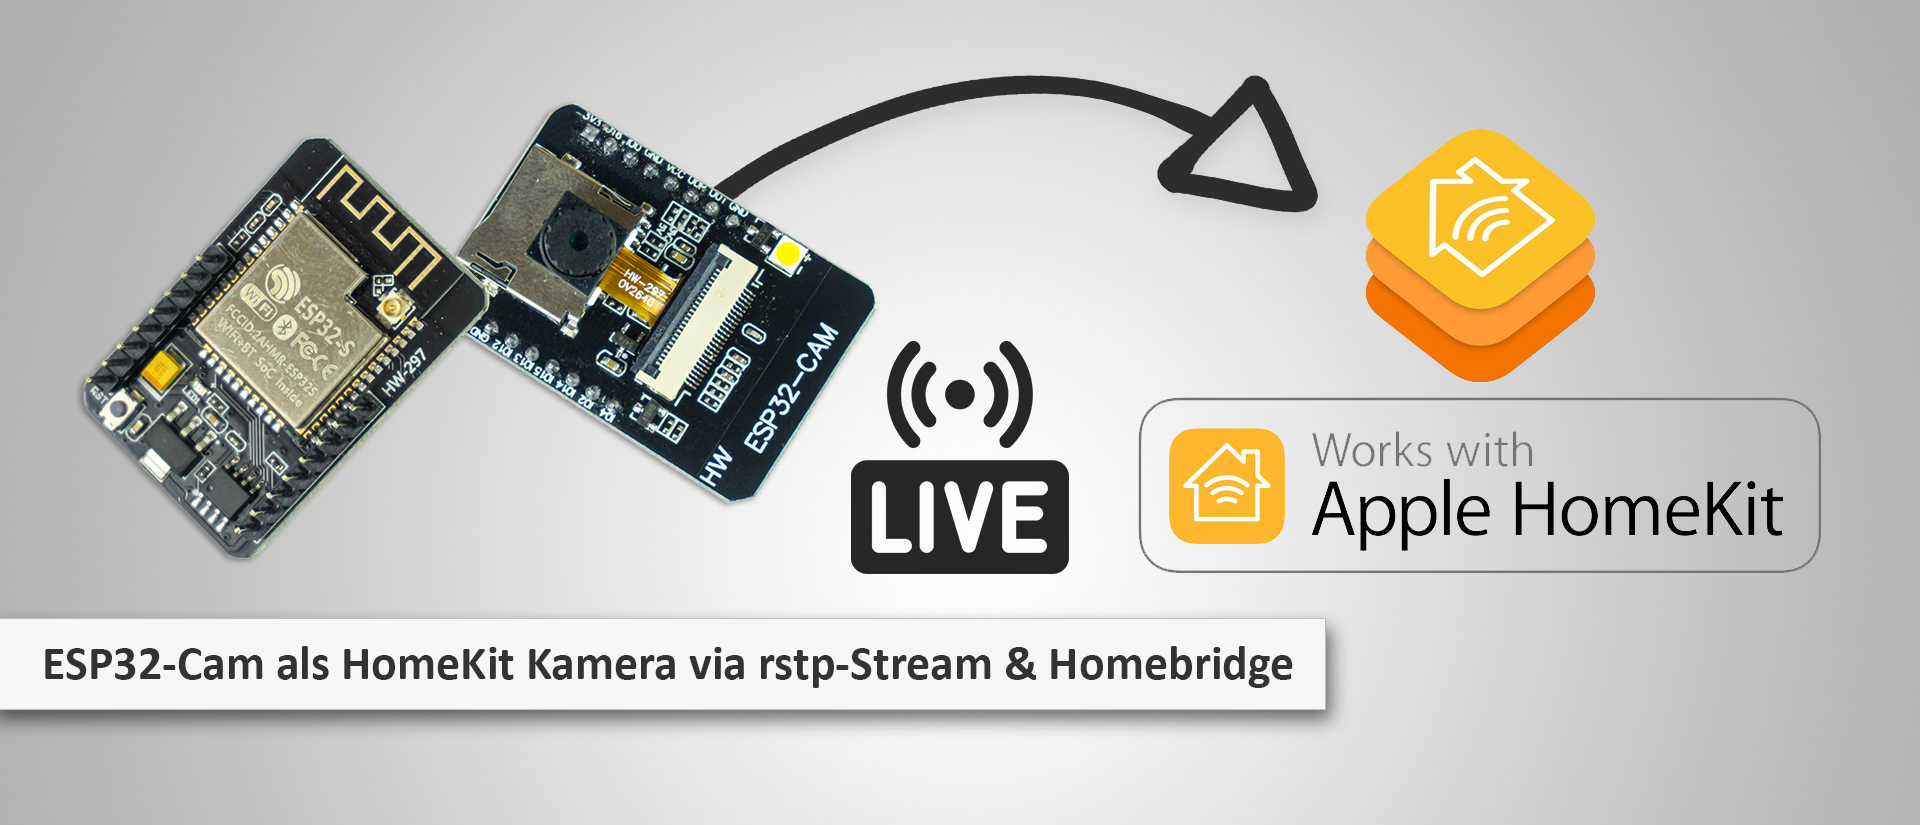 makesmart: ESP32-Cam als HomeKit Kamera via rtsp-Stream & Homebridge